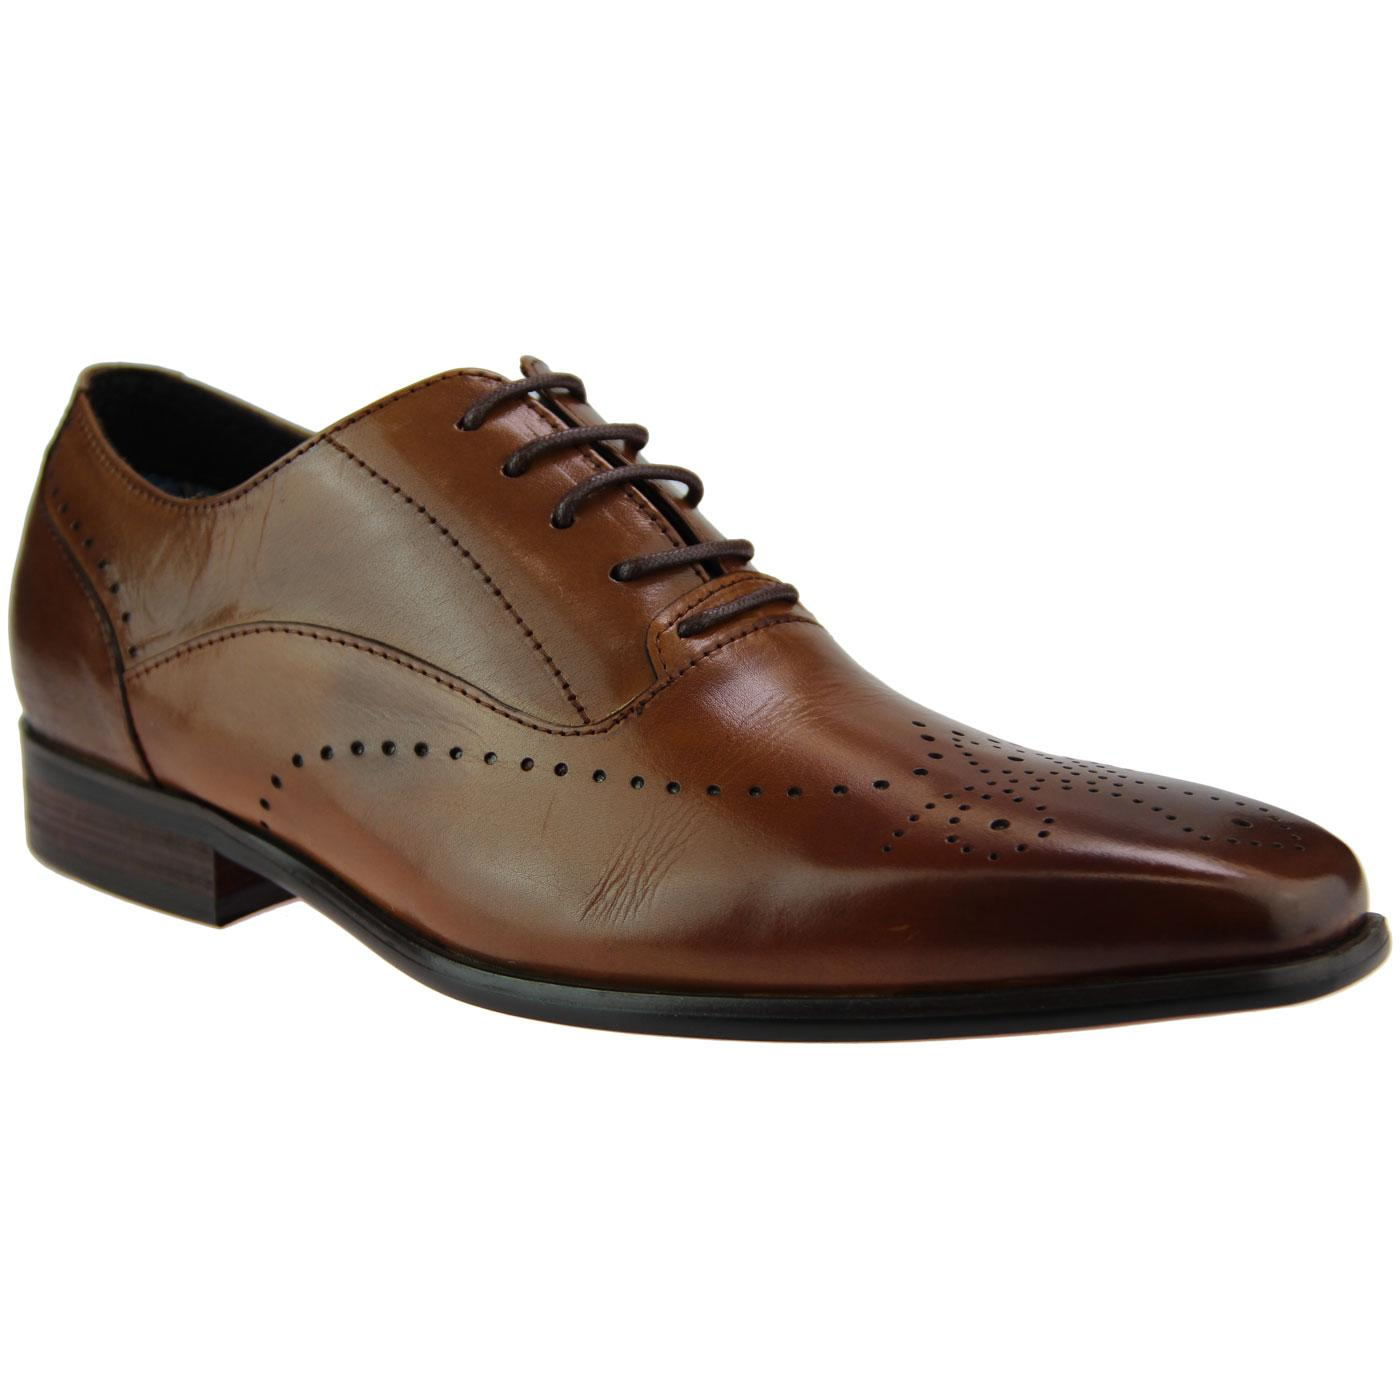 Coulter PAOLO VANDINI Mod Oxford Brogue Shoes TAN